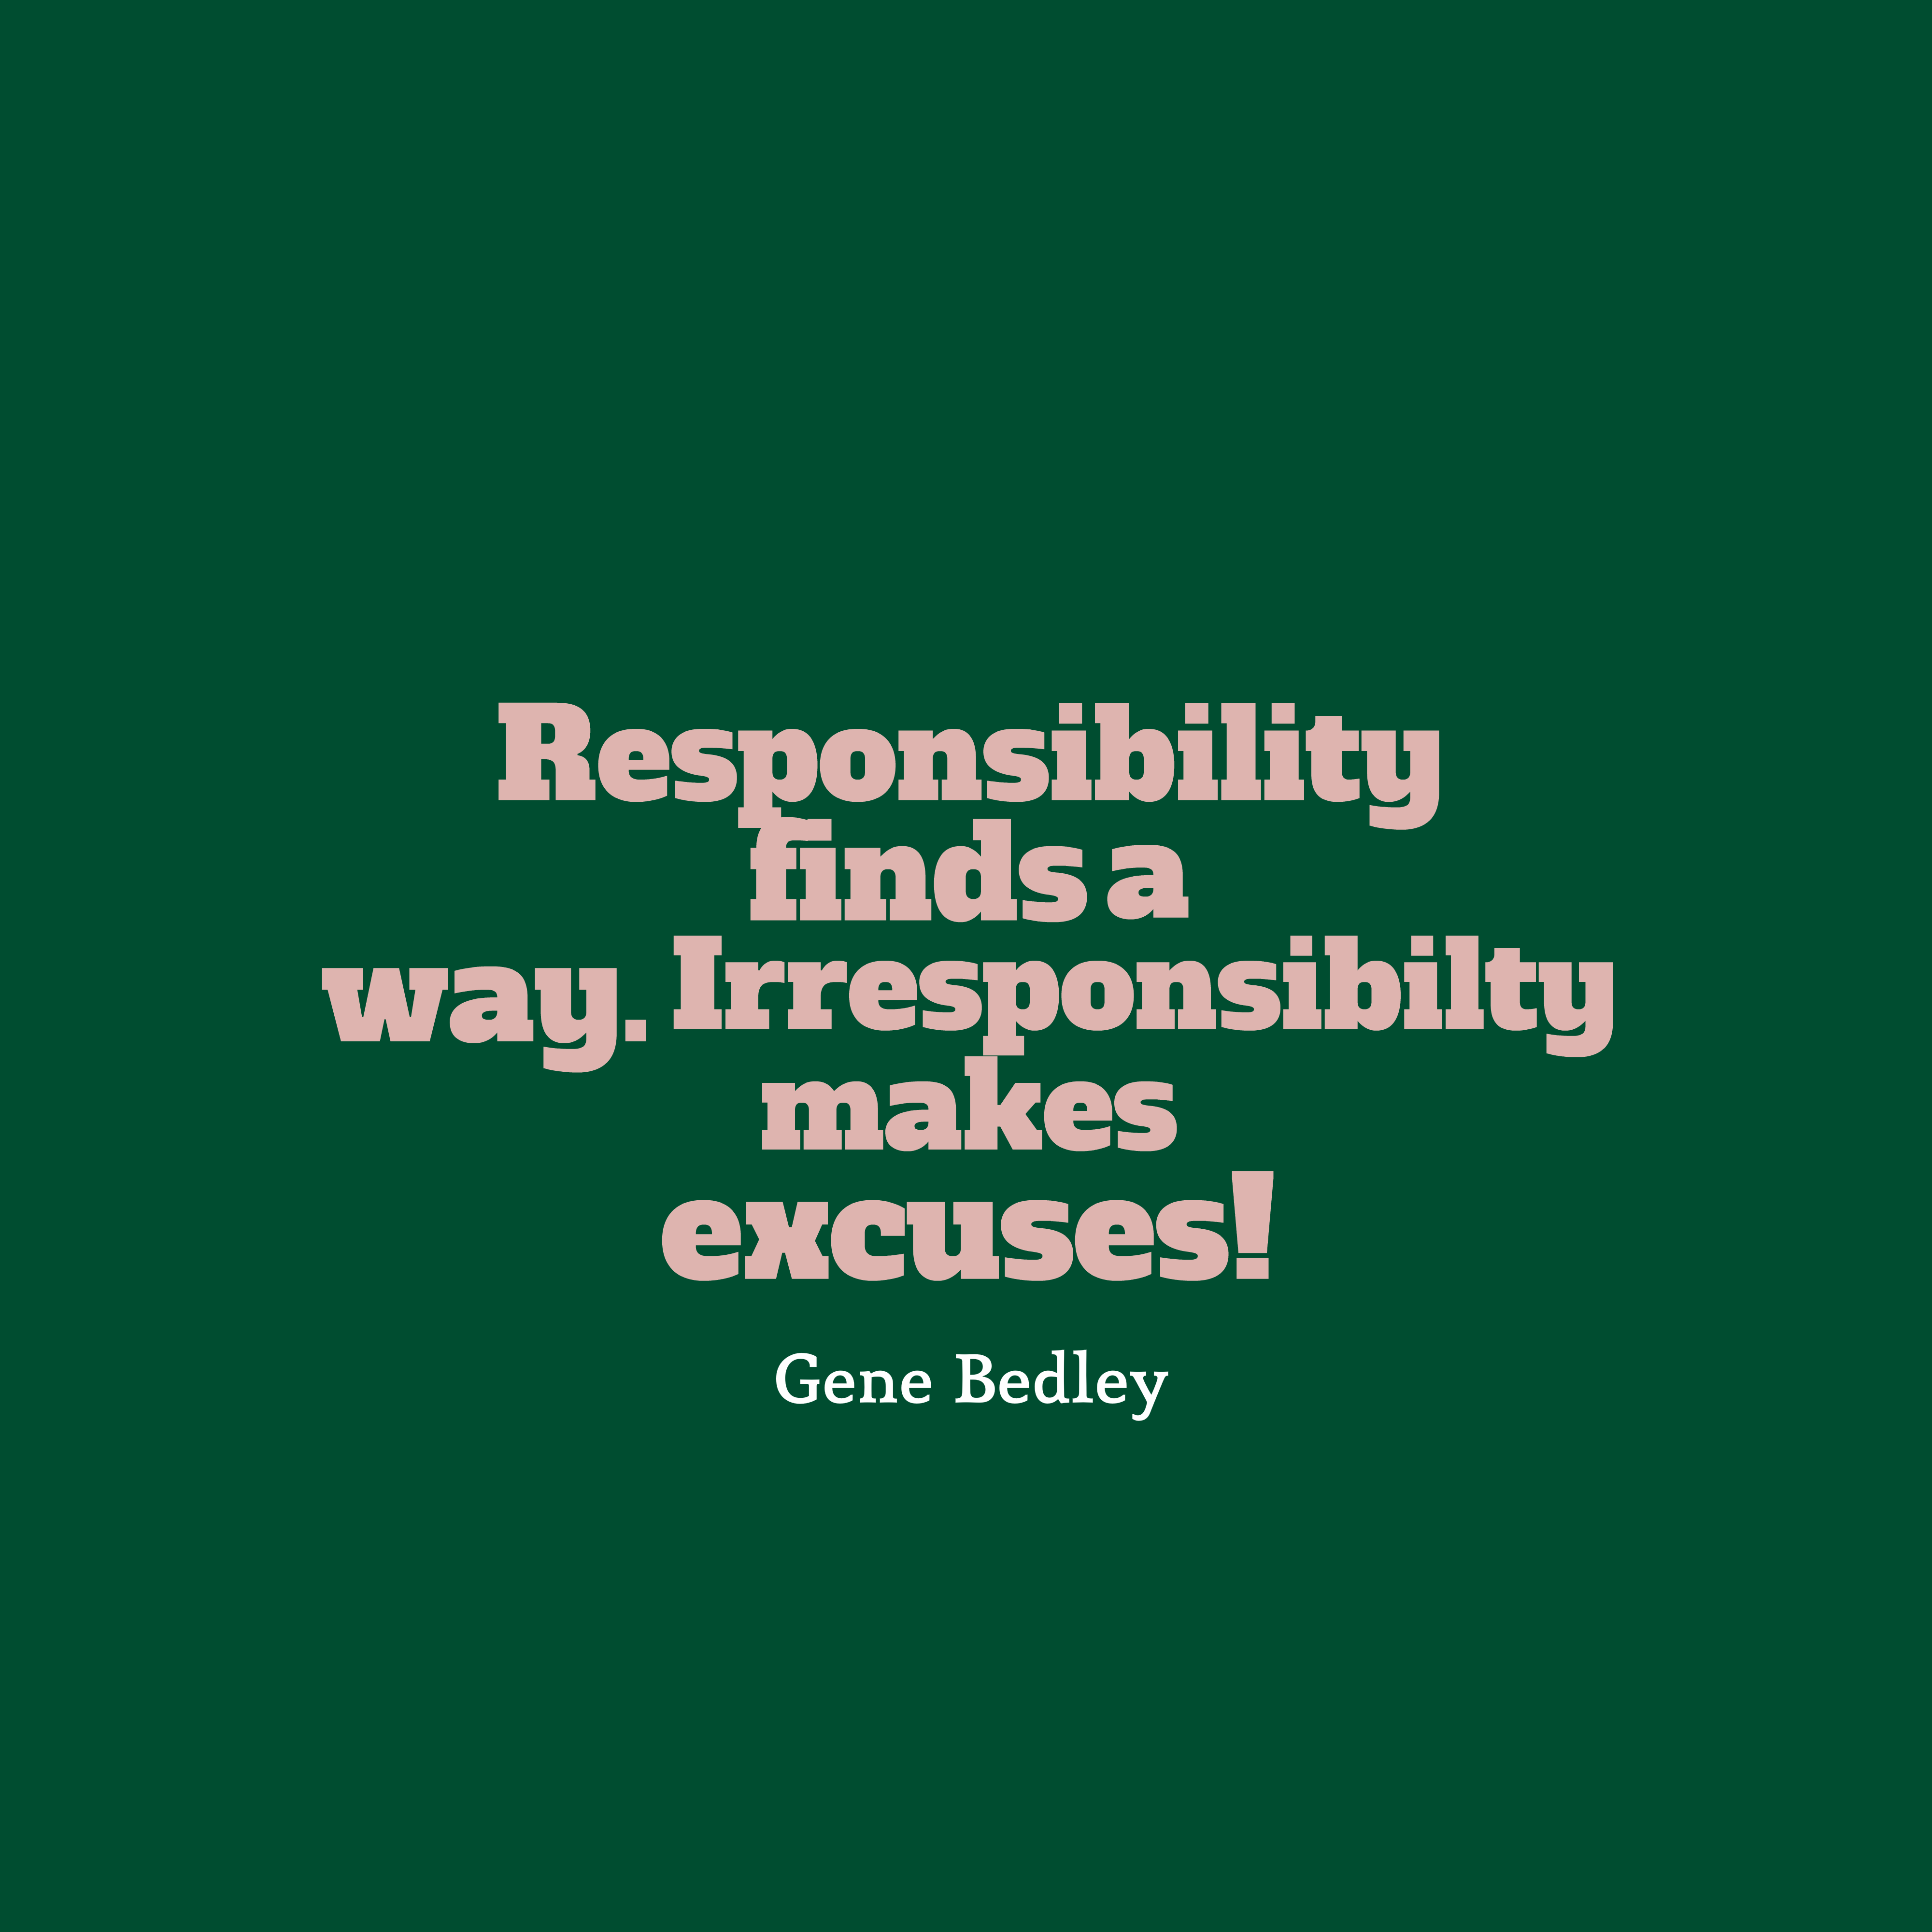 Gene bedley quote about responsibility